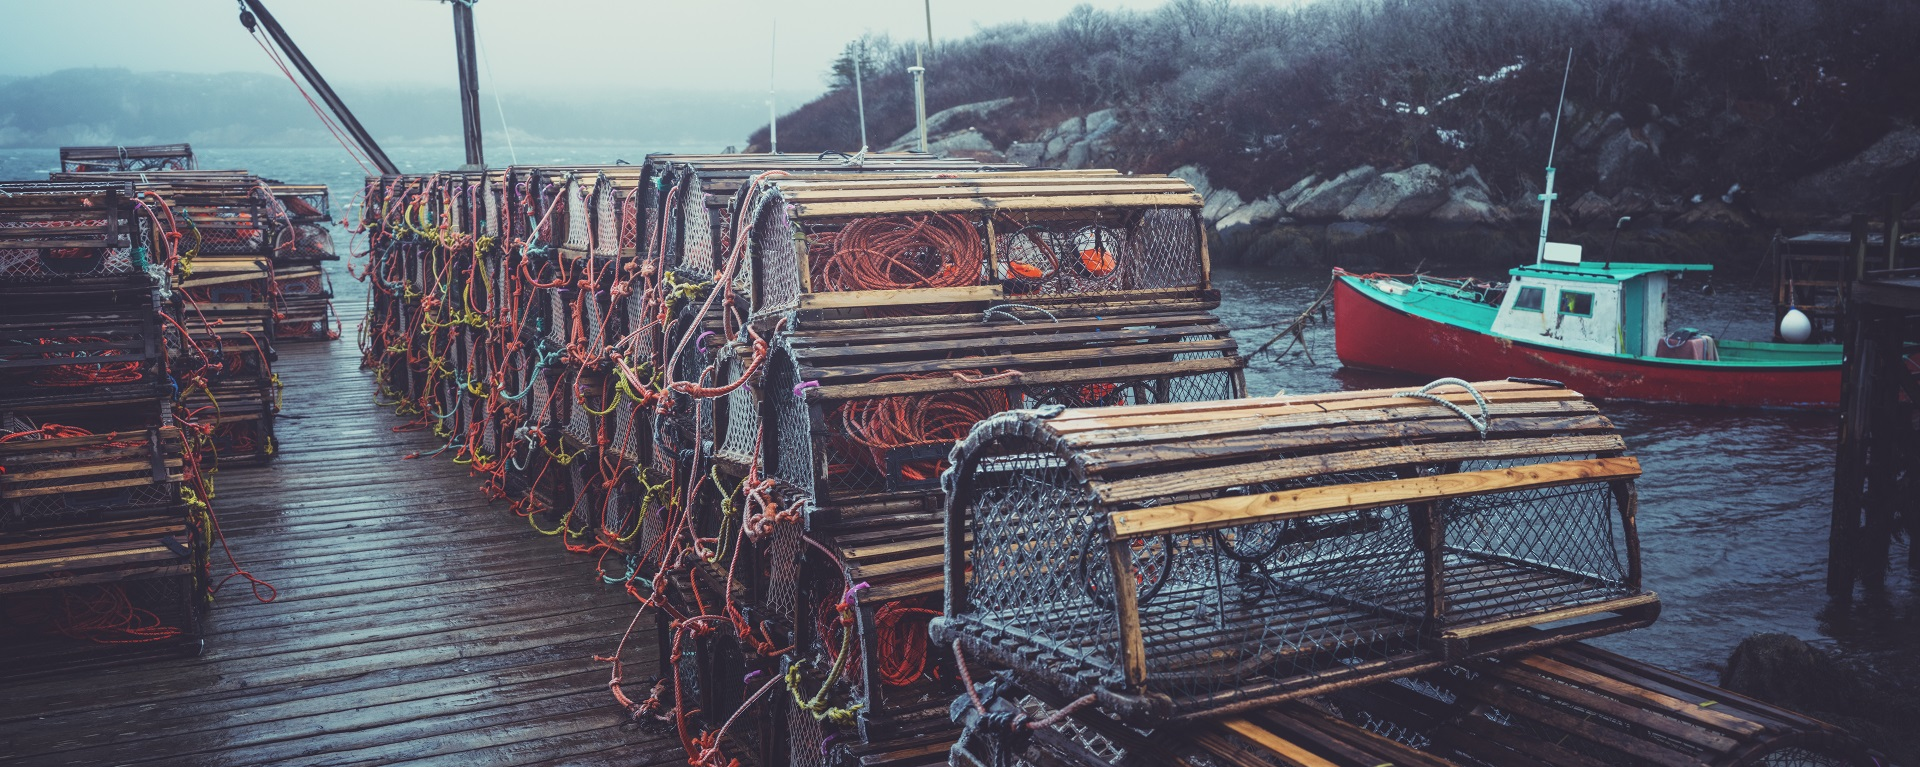 Lobster fishing harbour